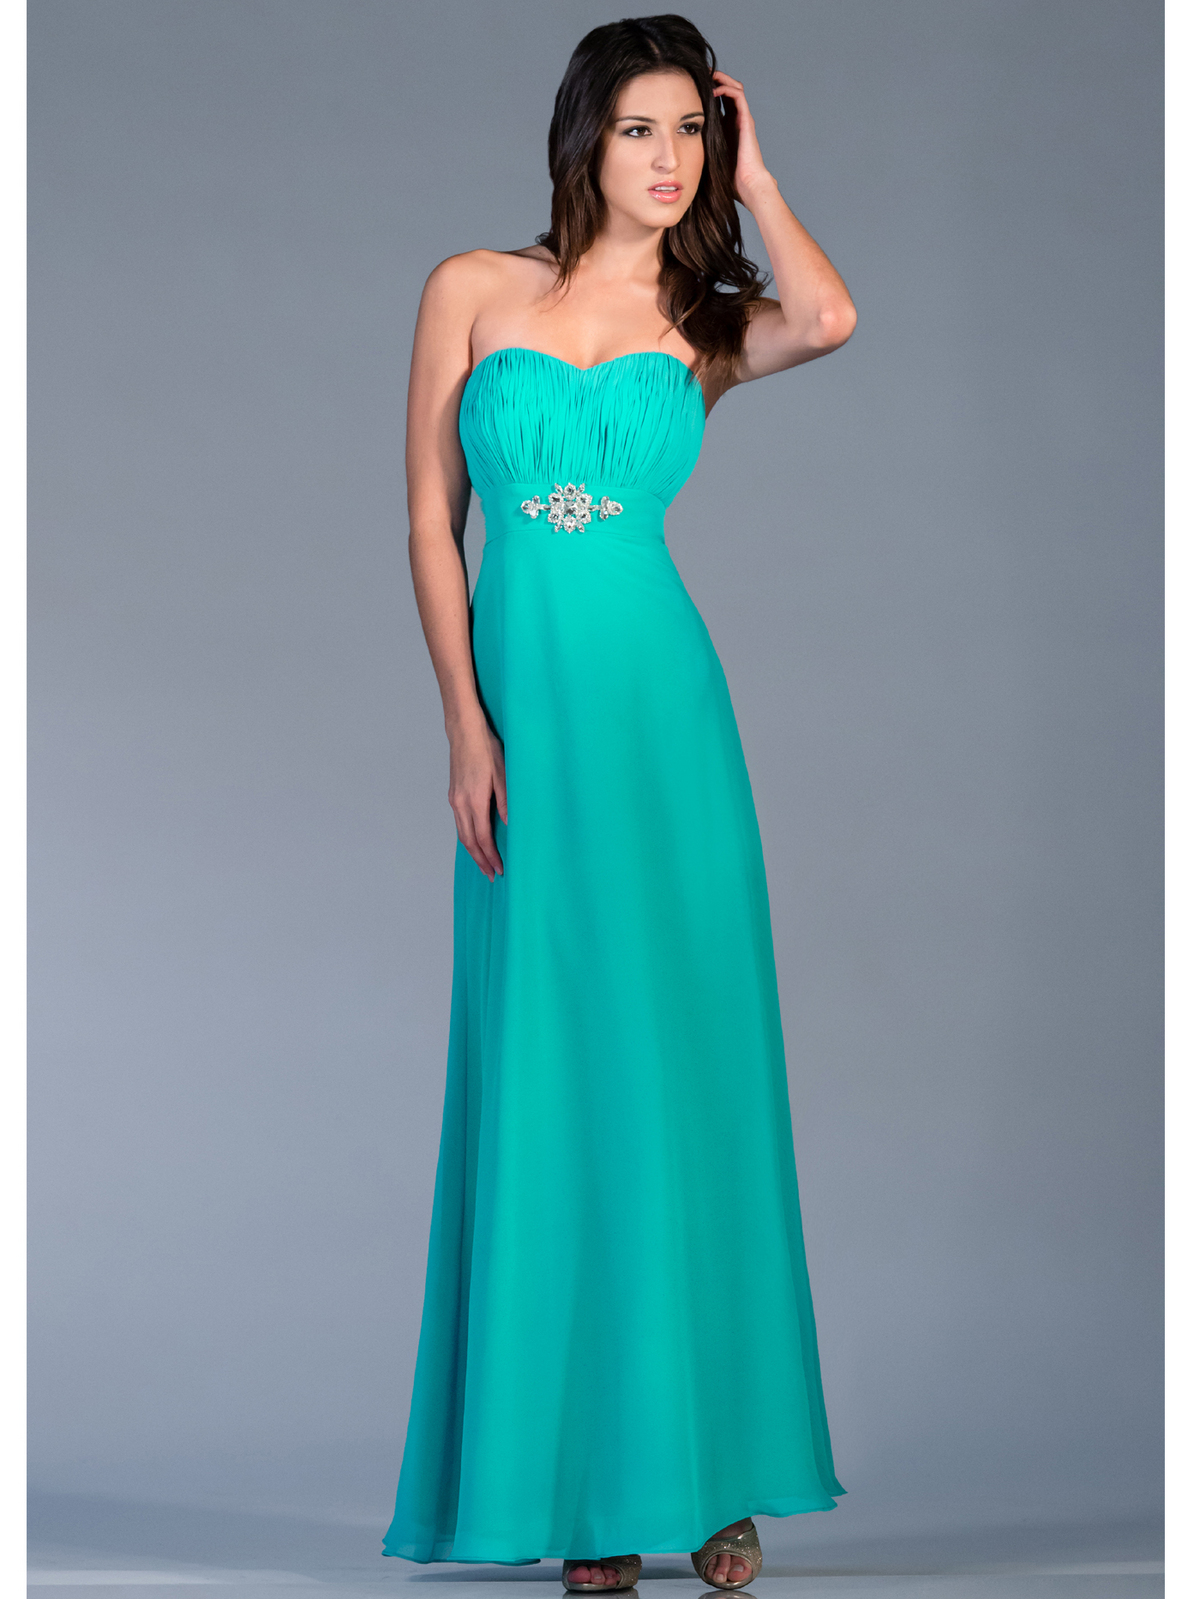 Strapless Chiffon Evening Dress | Sung Boutique L.A.